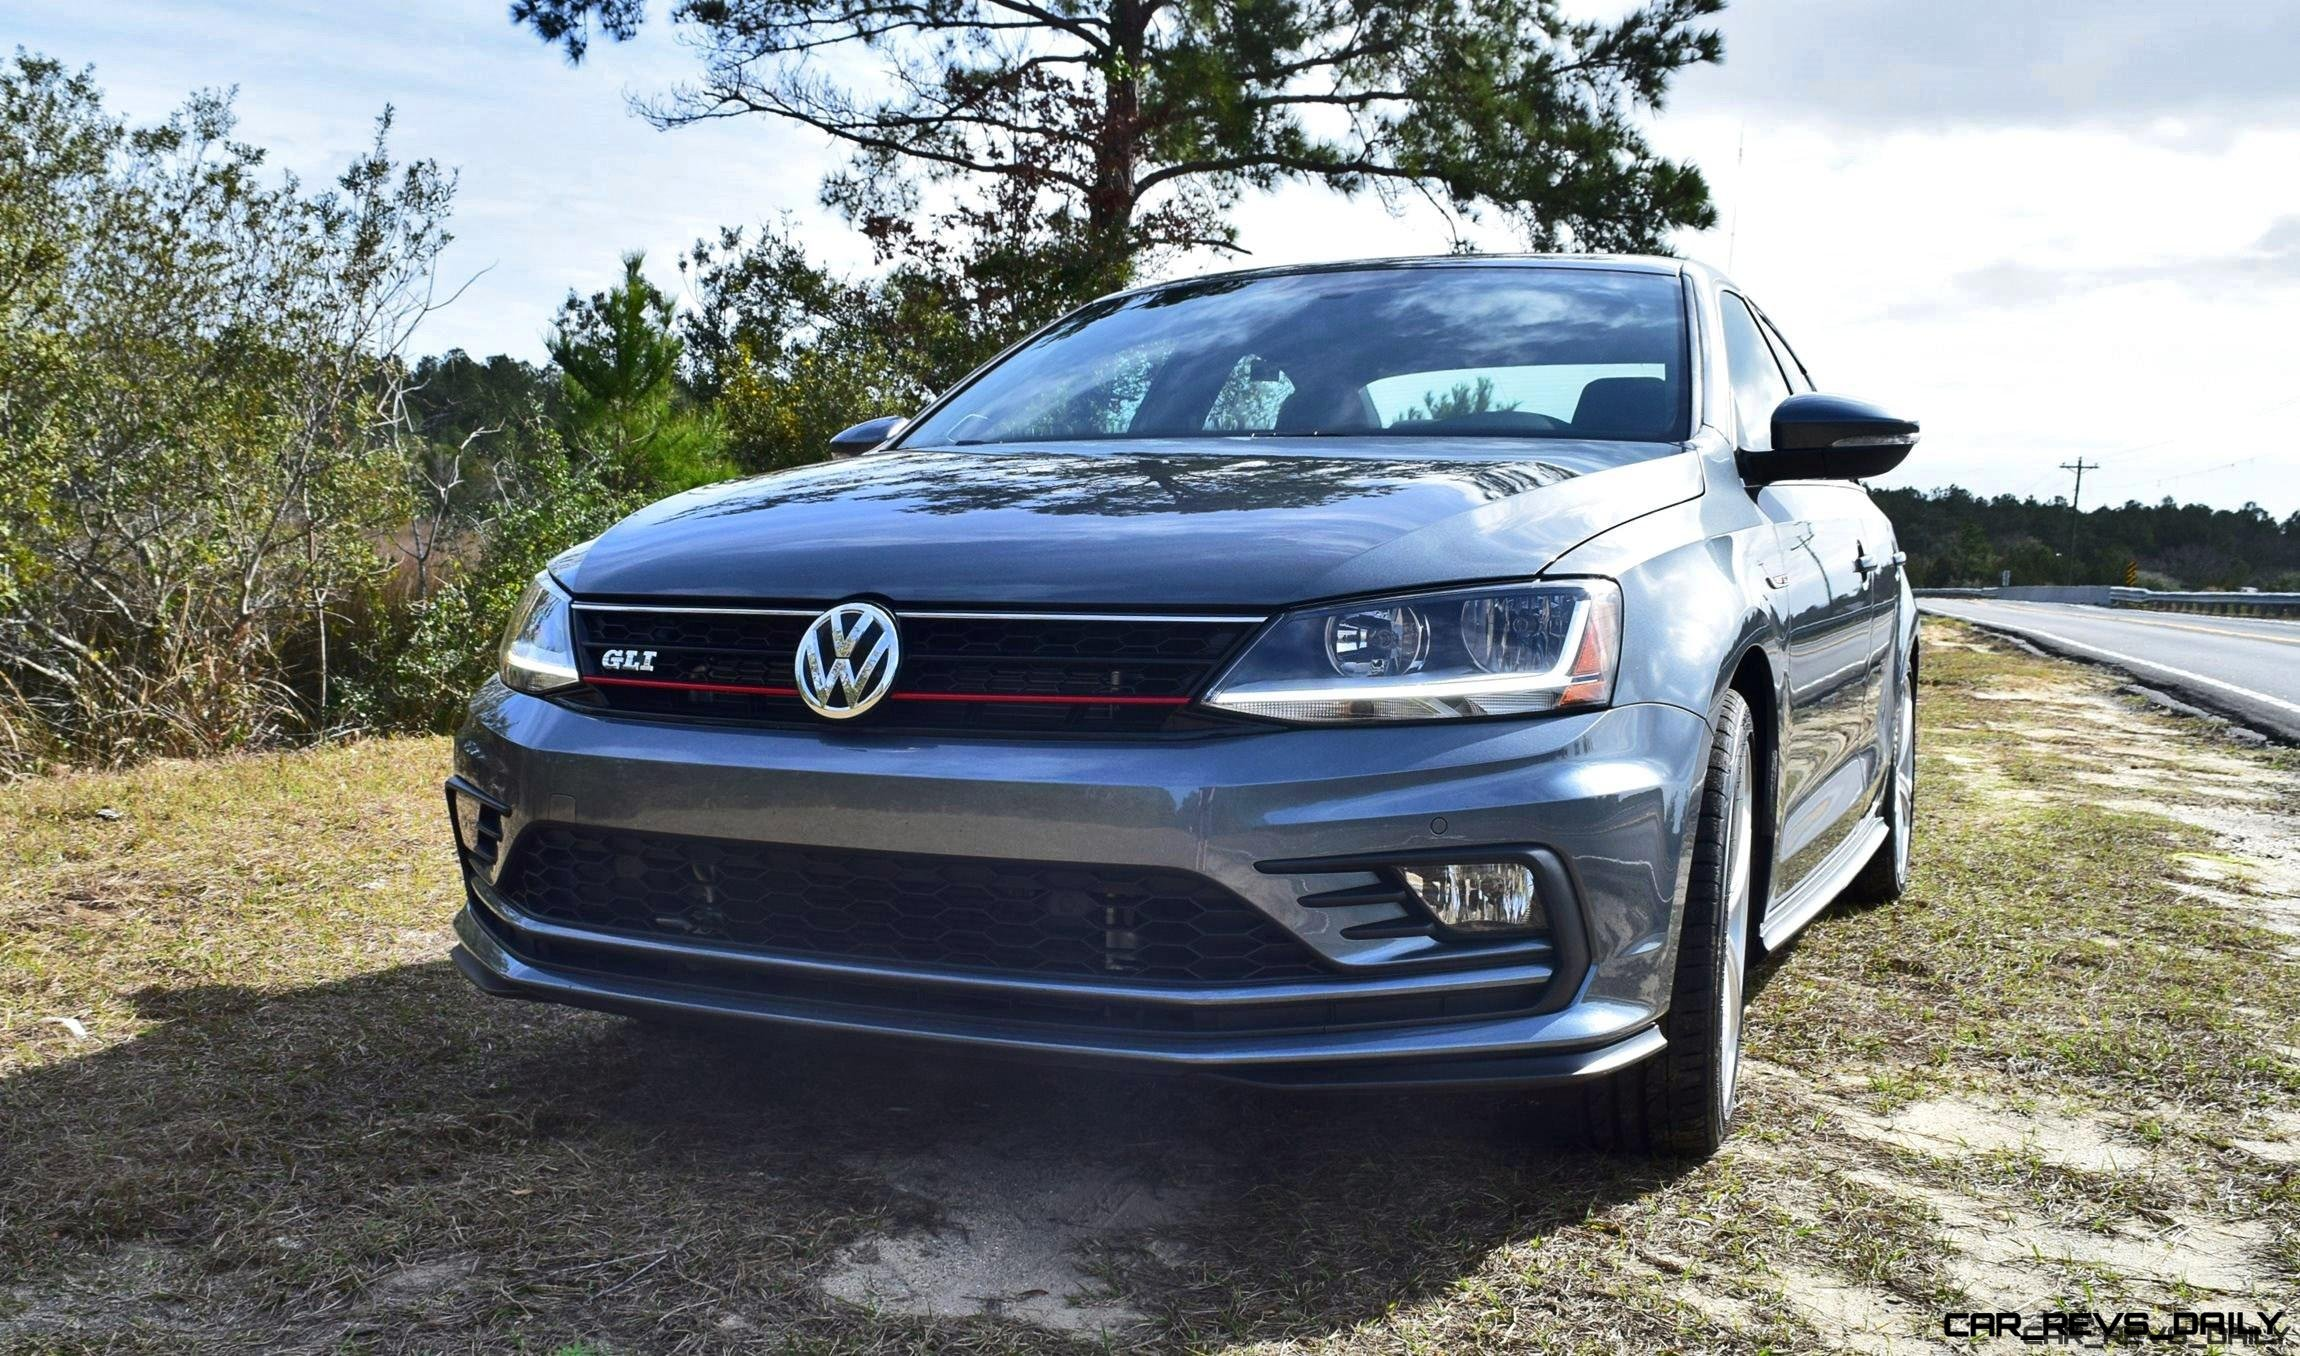 2017 Vw Jetta Gli Dsg Automatic Hd Road Test Review